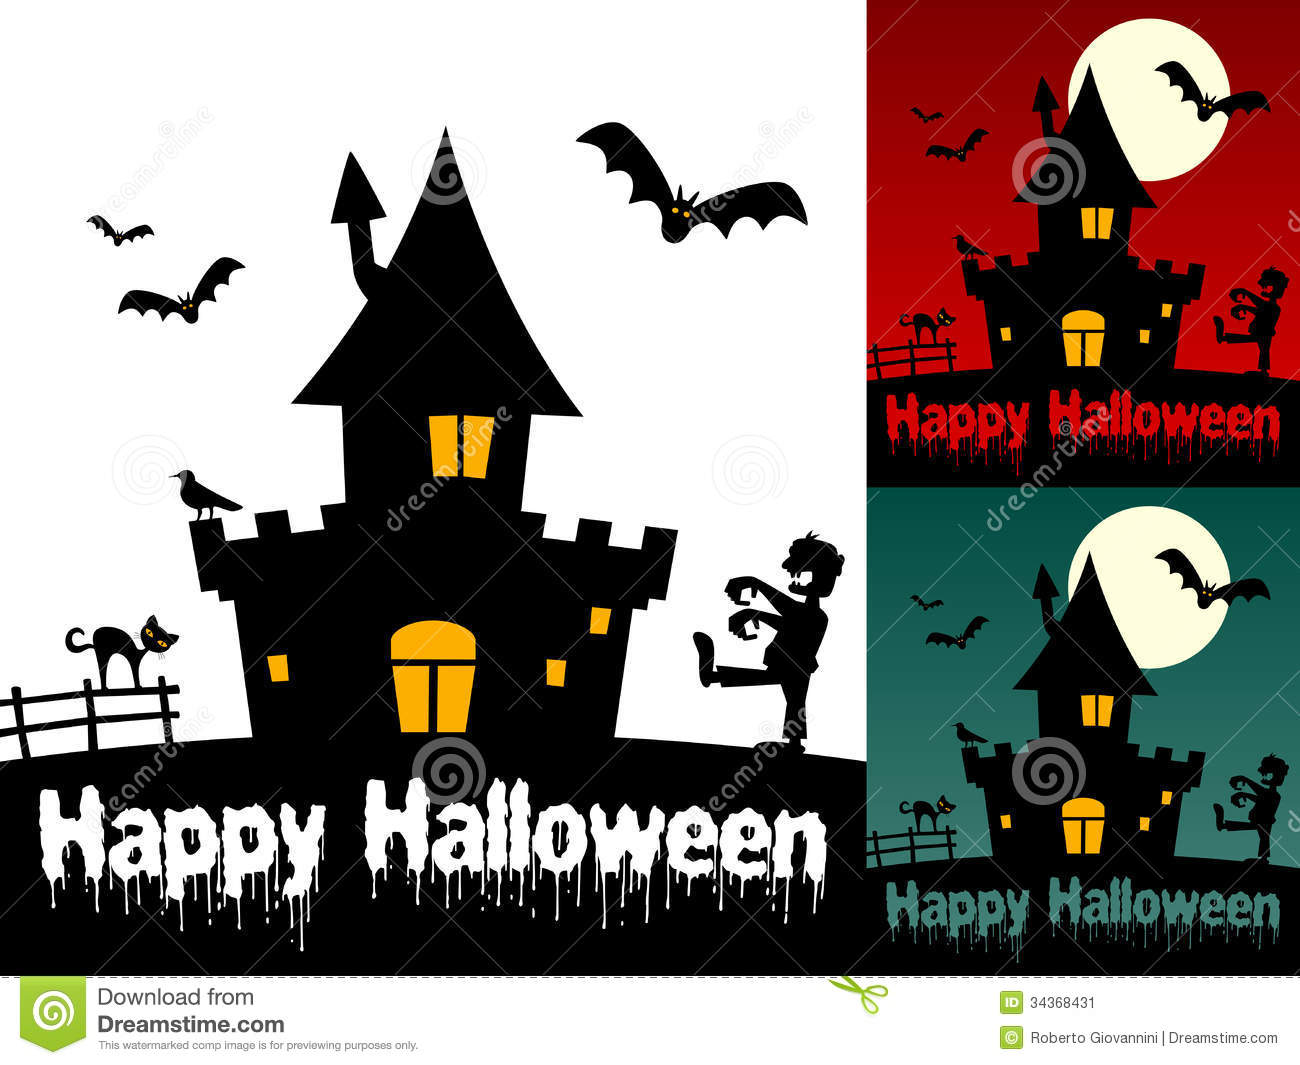 Halloweencards Geccetackletarts